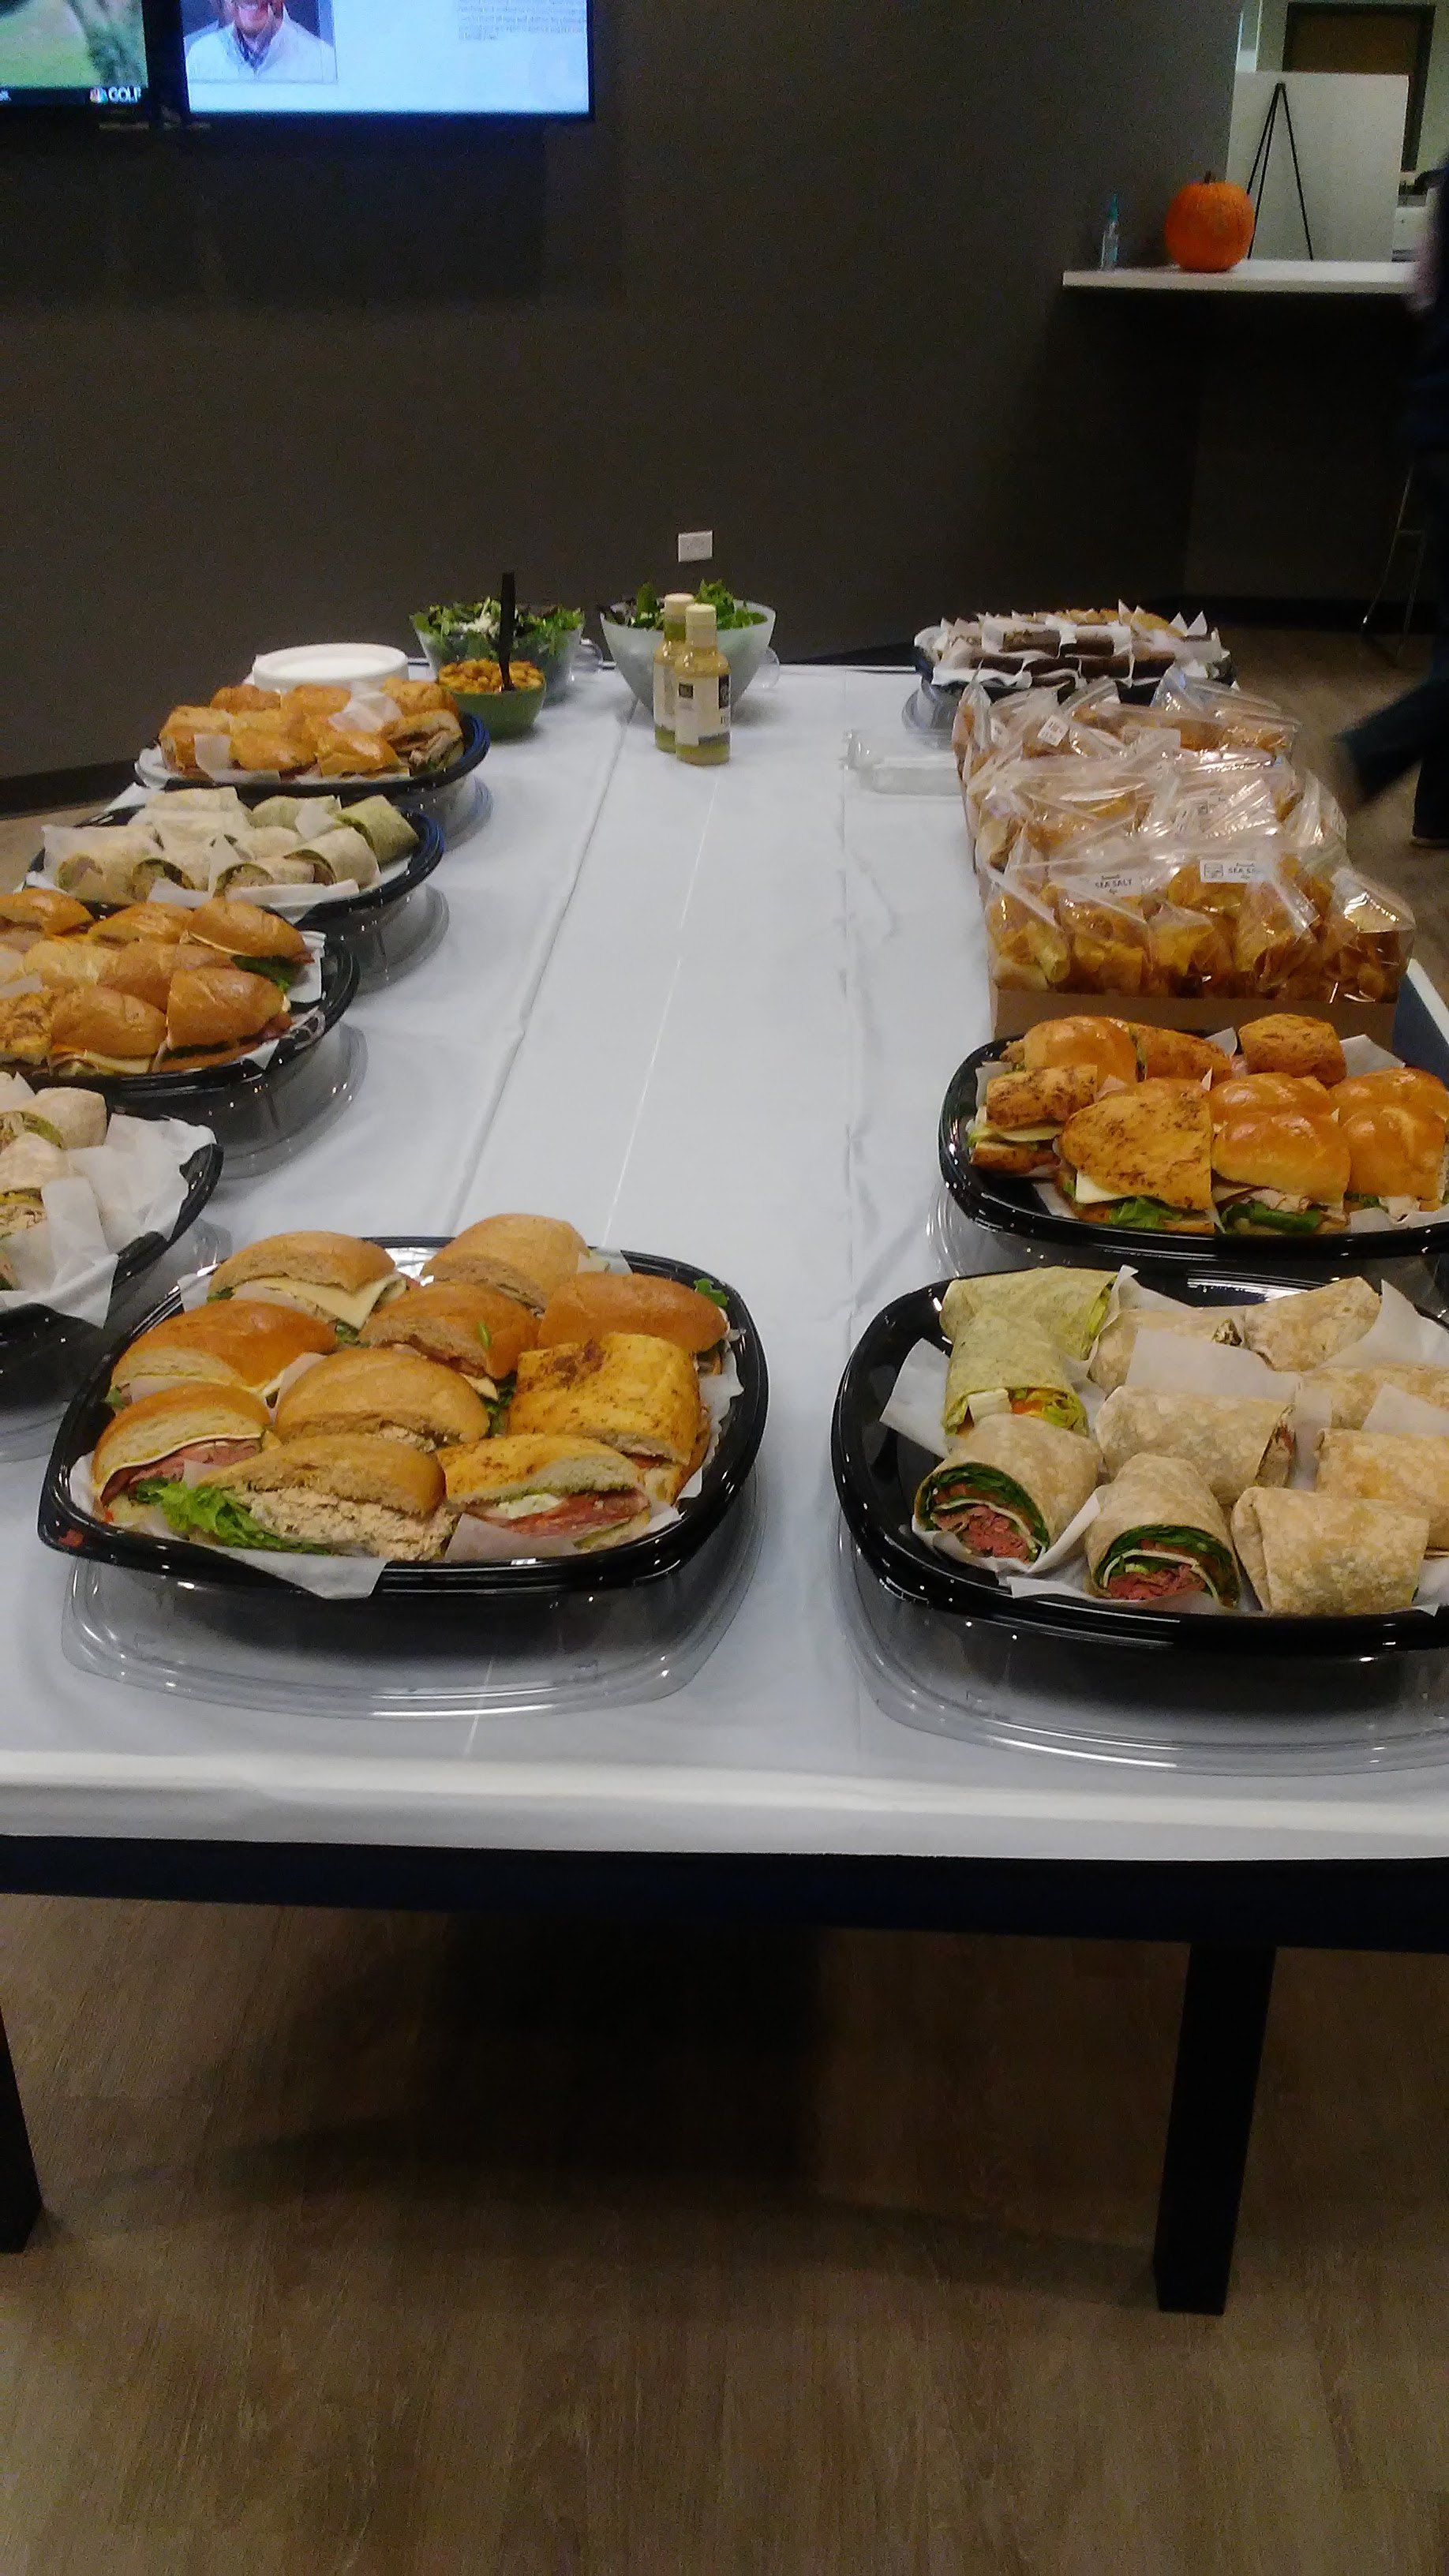 Lunch Wraps and Sandwiches pic